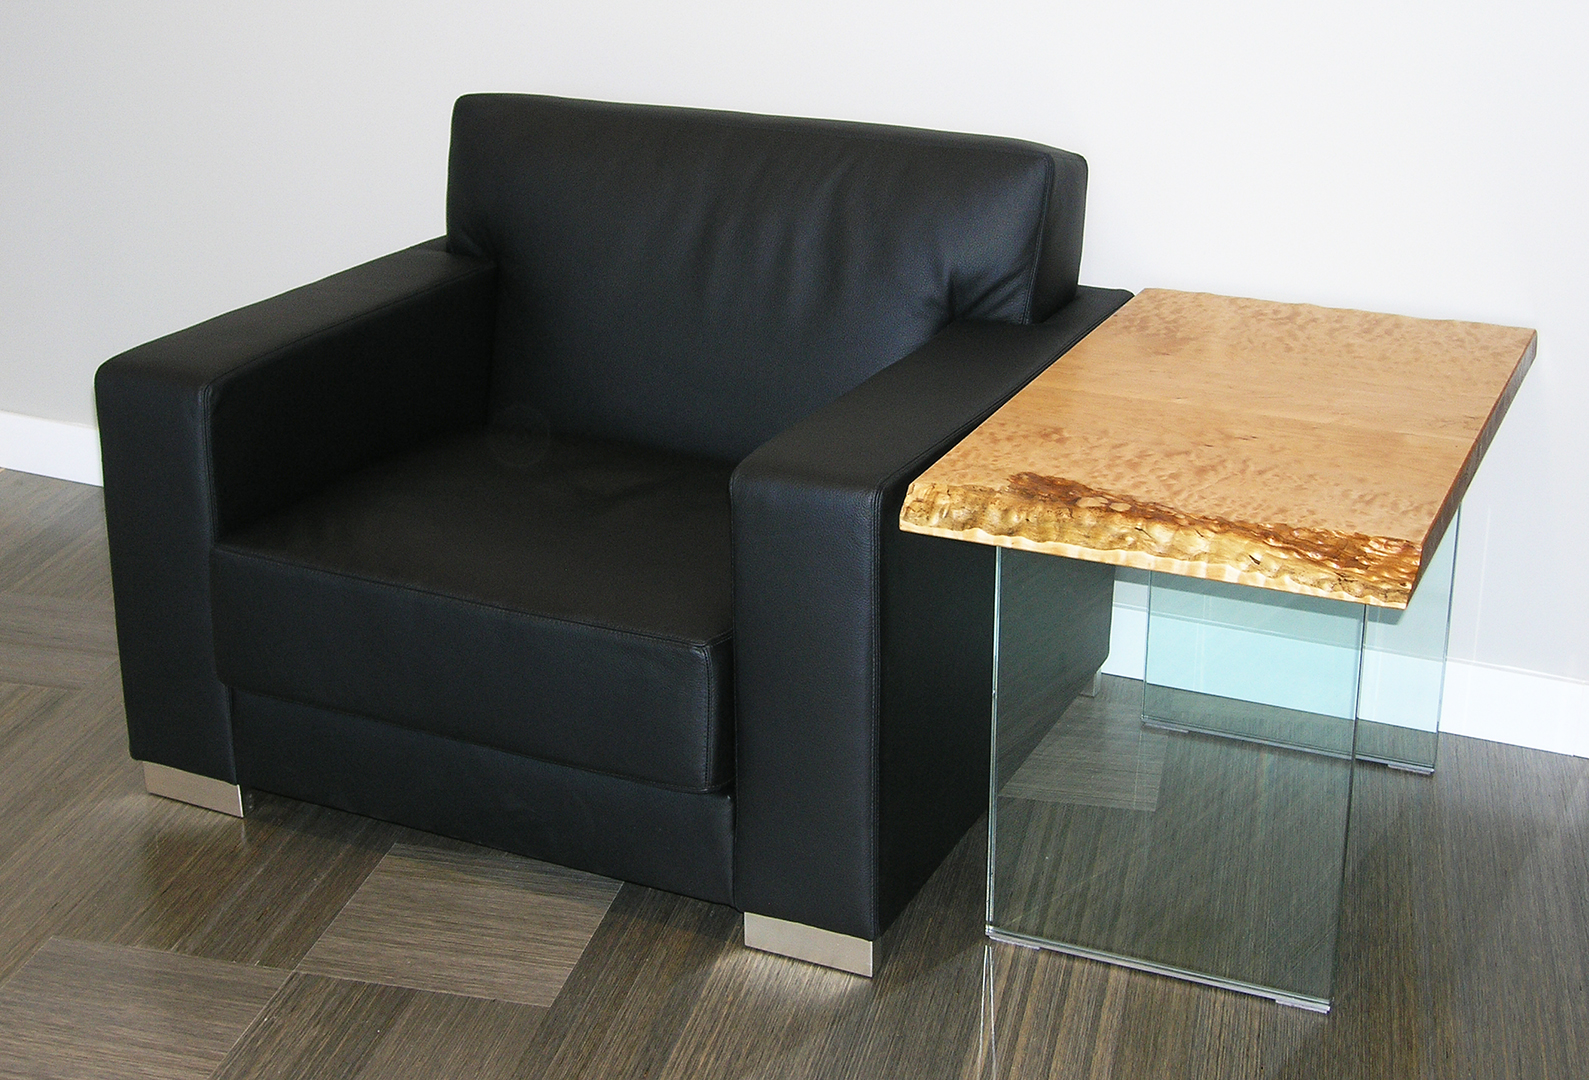 mapleart custom wood furniture  vancouver  bcfresia end corporate boardroom meaning corporate boardroom design